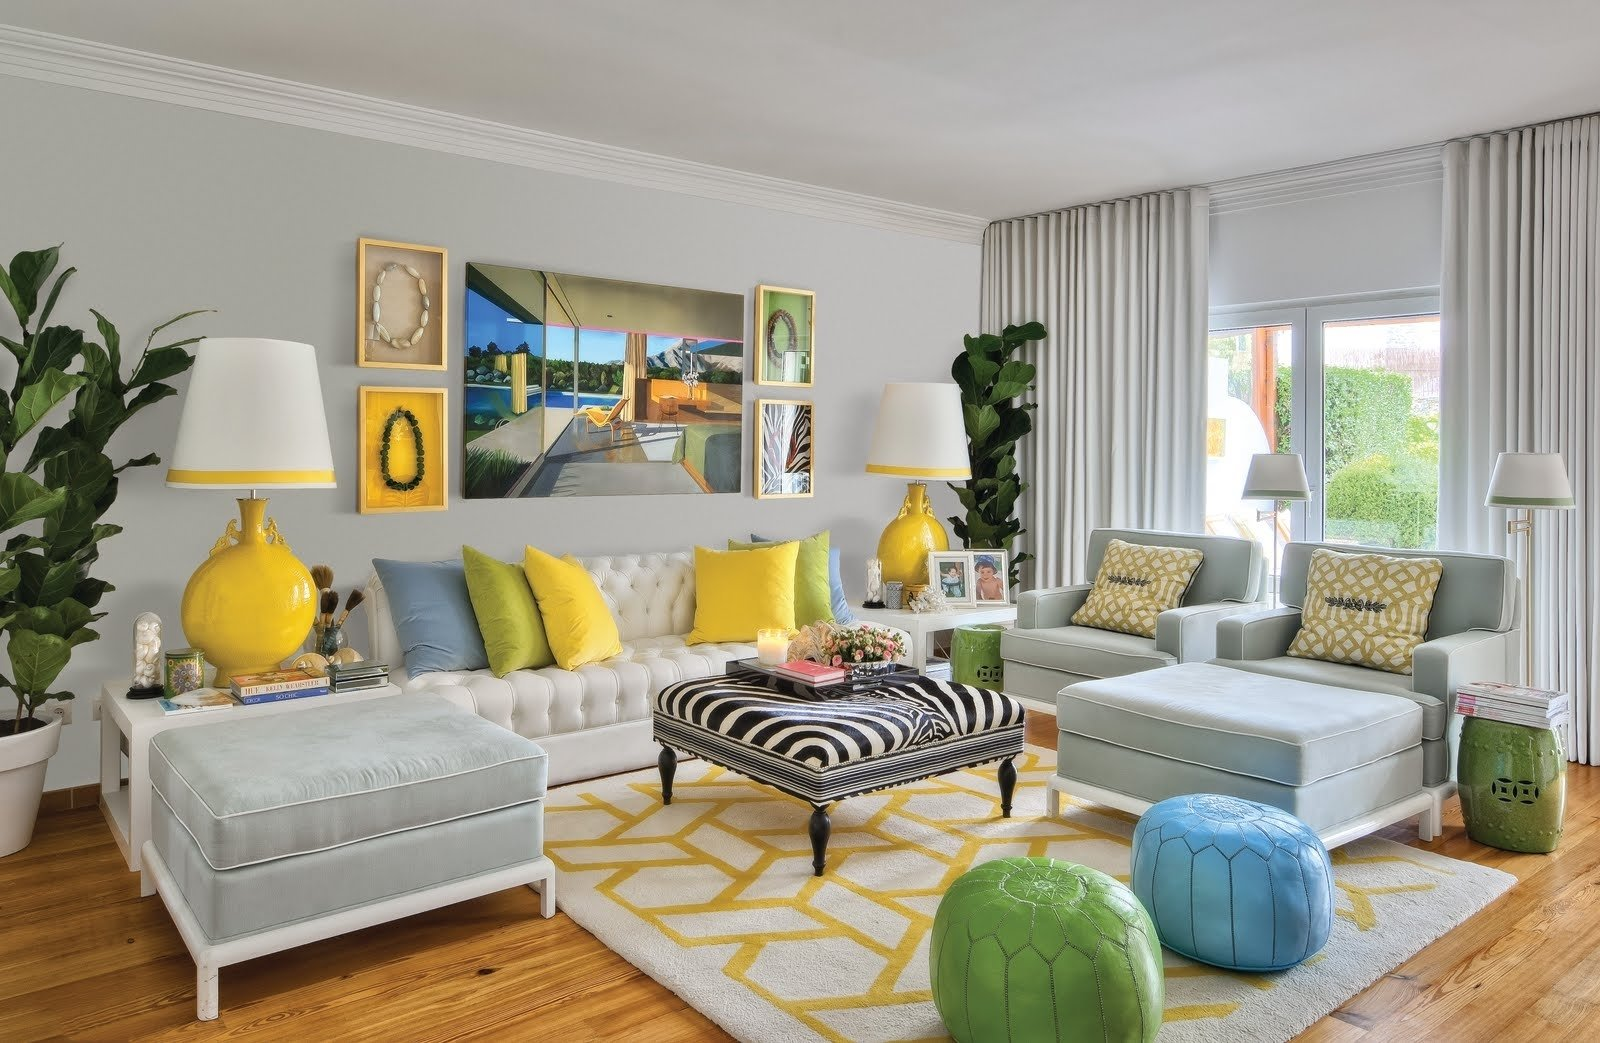 10 Beautiful Gray And Yellow Living Room Ideas best gray and yellow living room incredible homes best ideas 2020